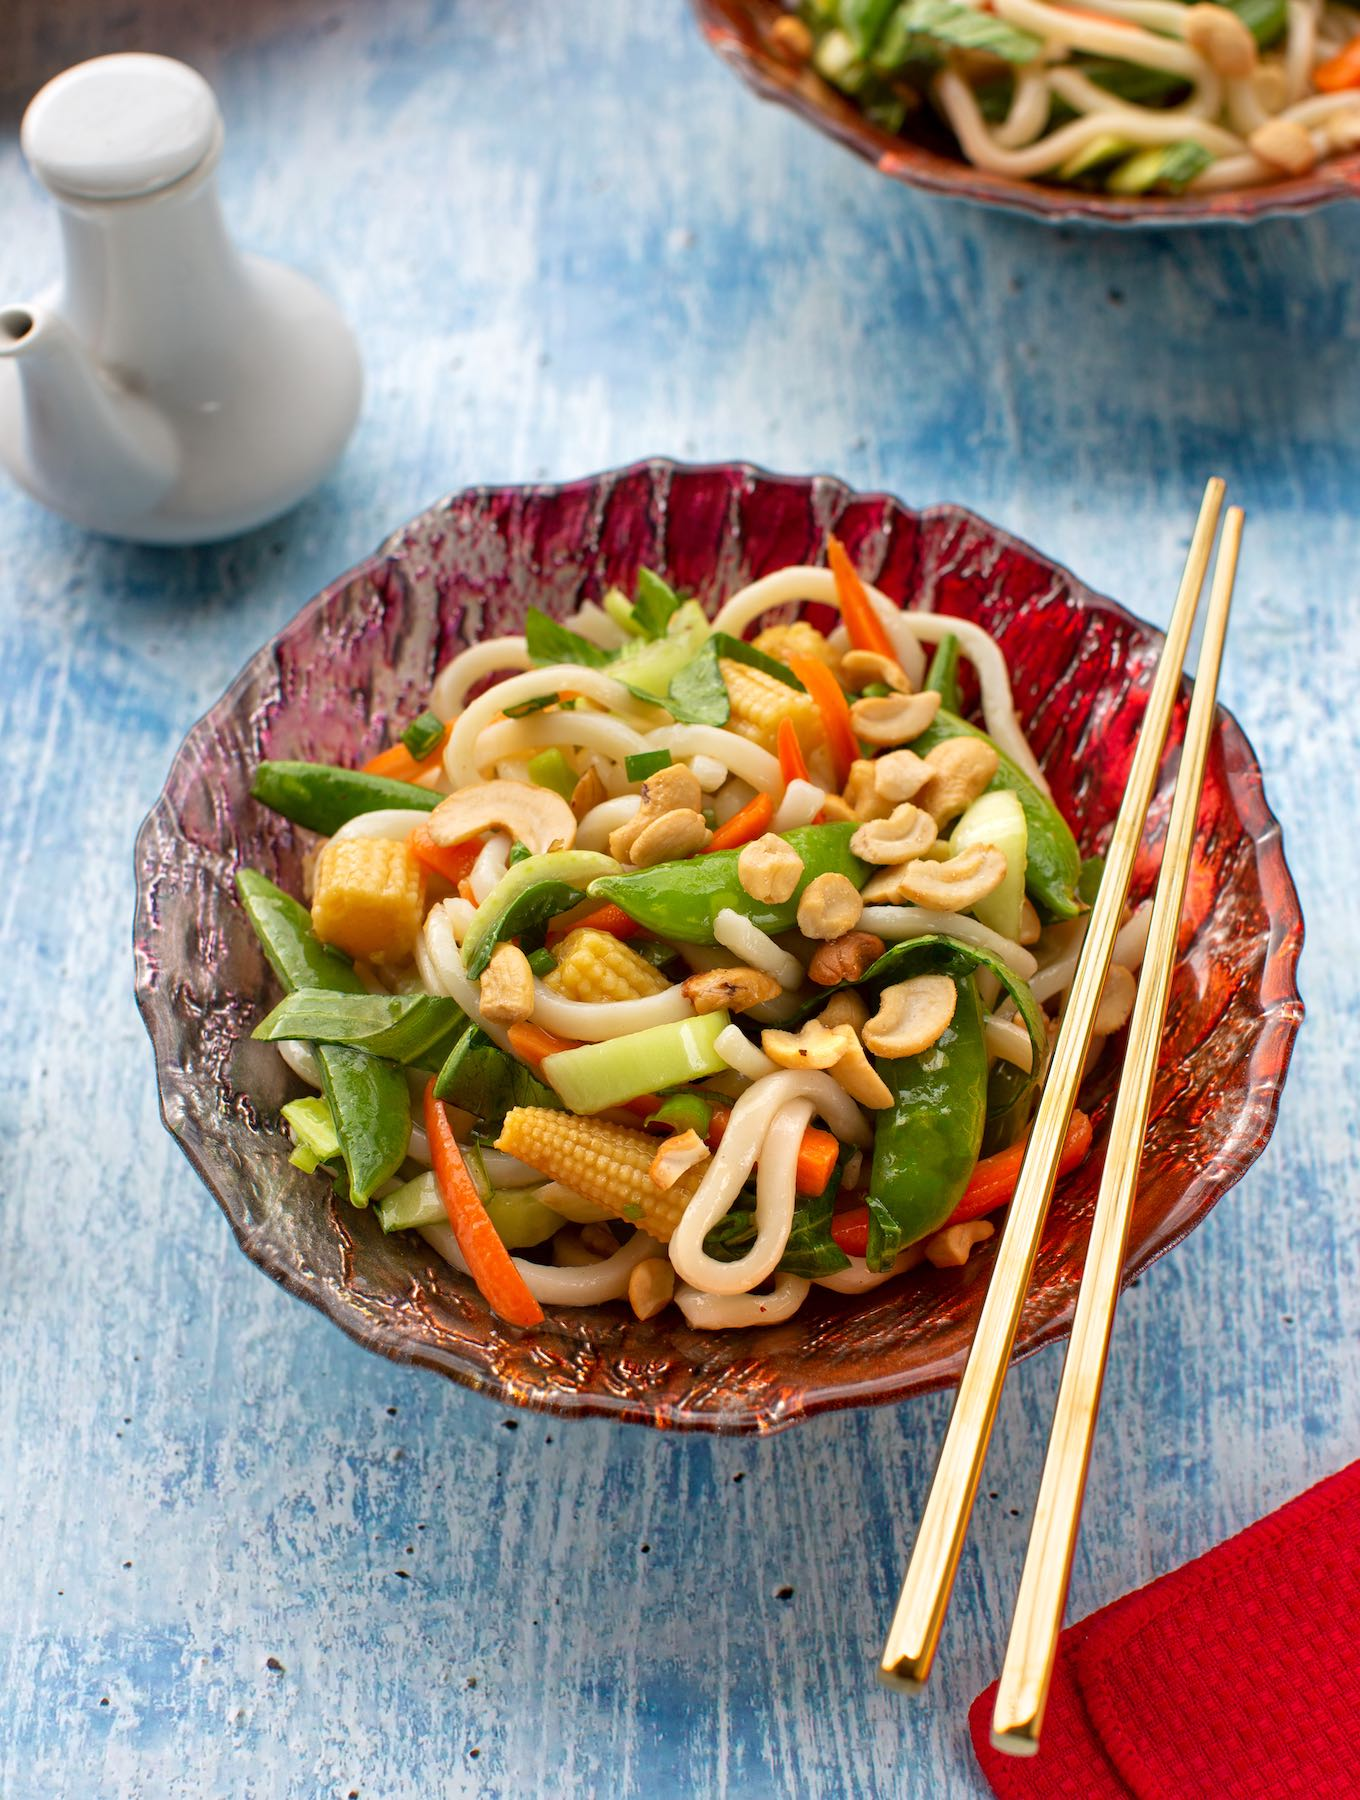 Udon noodles with crisp vegetables